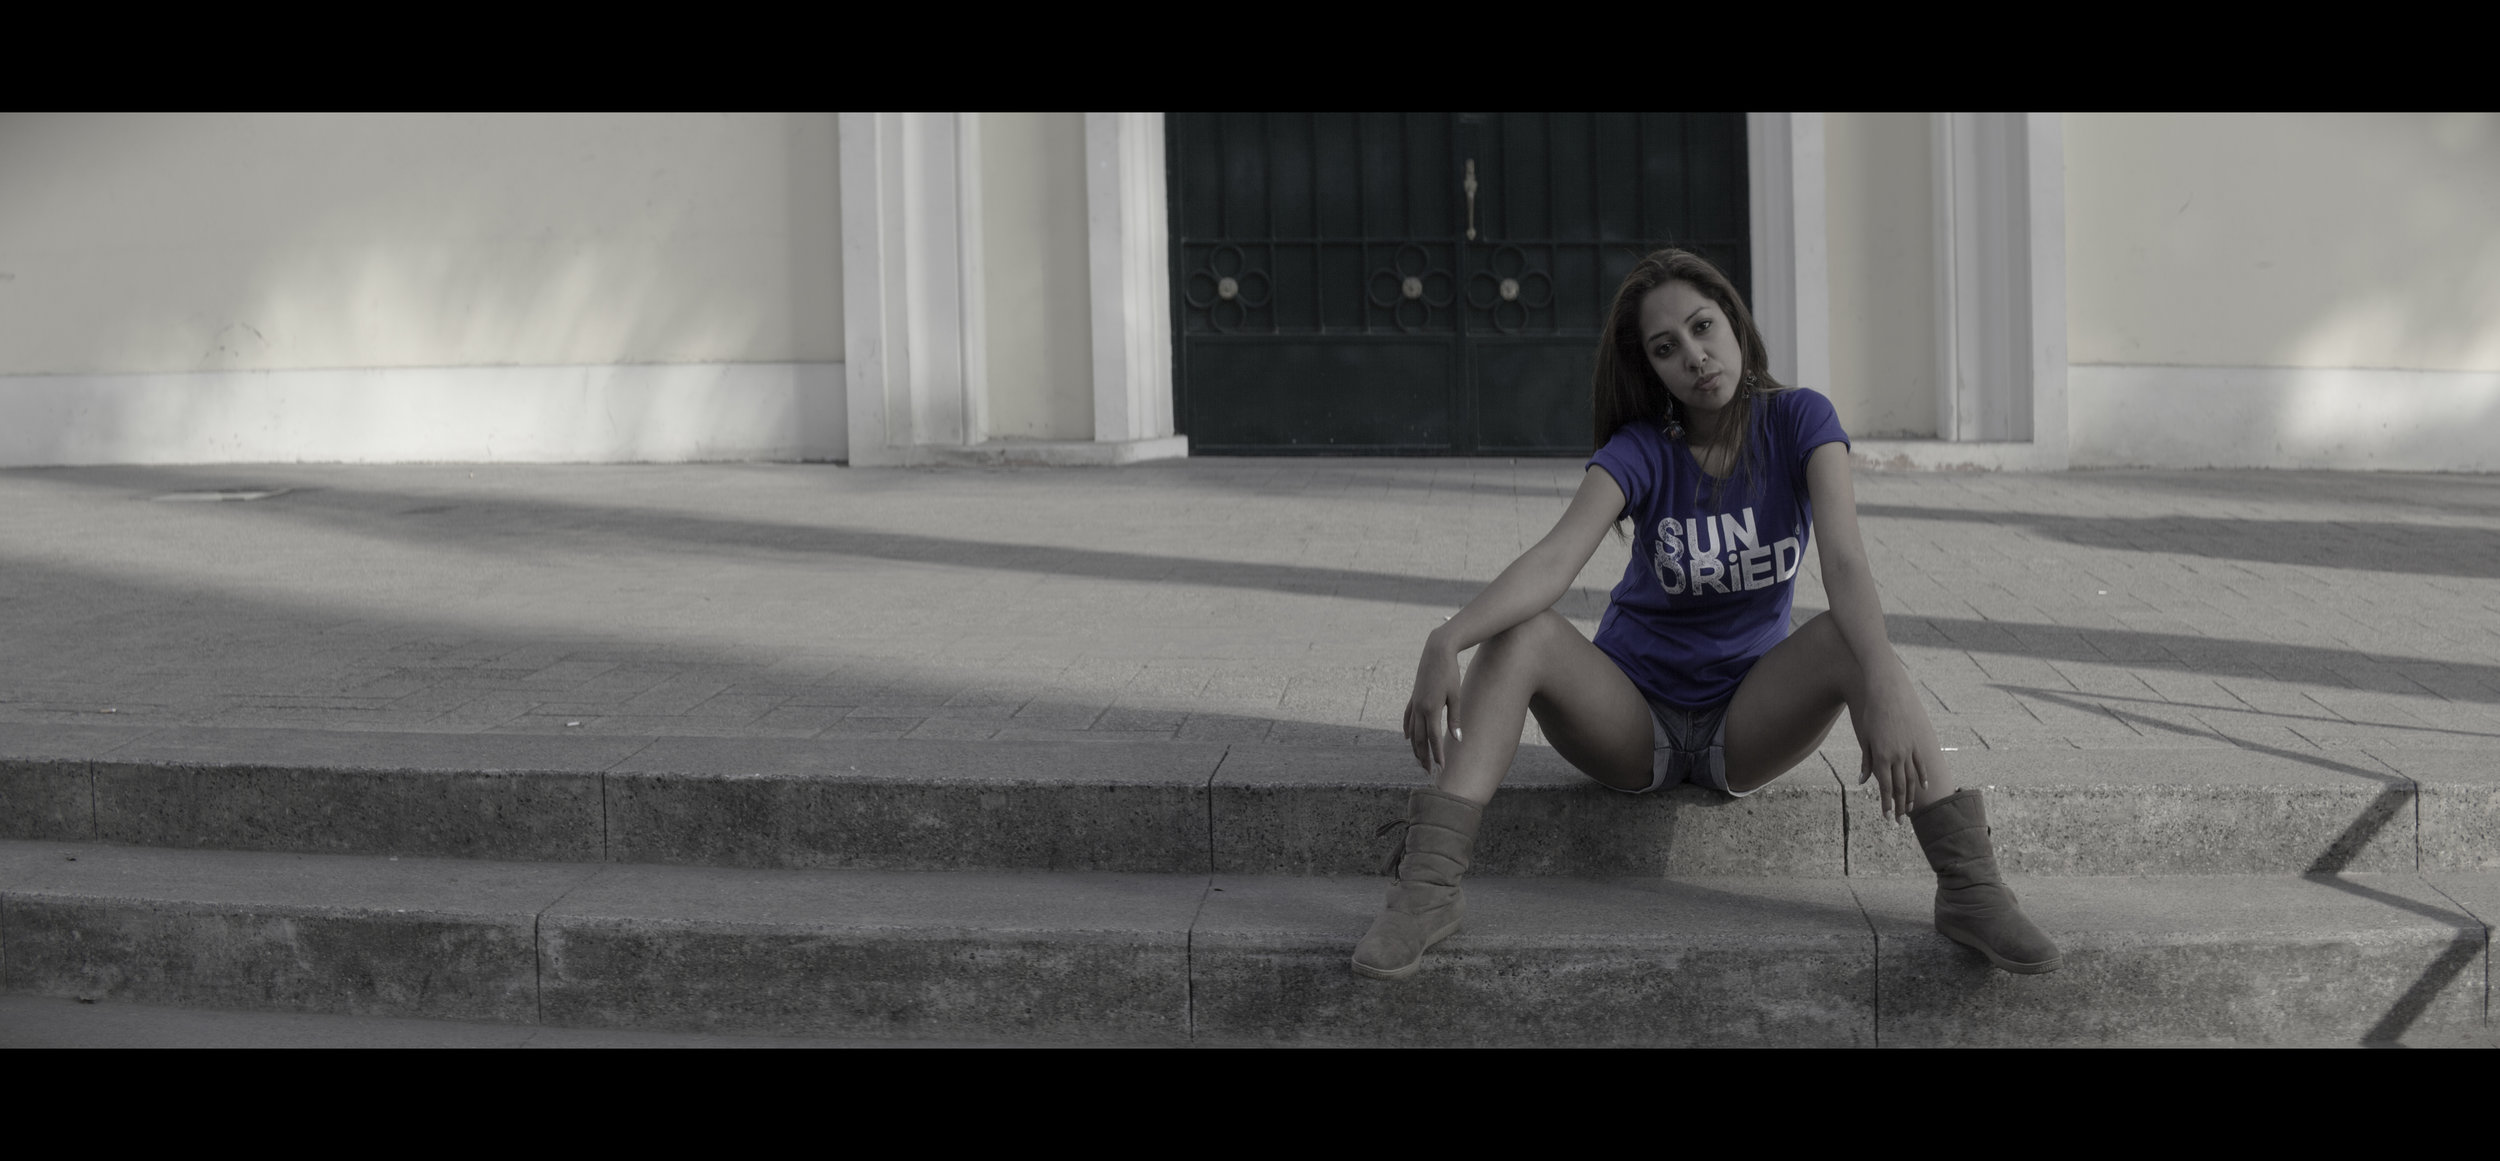 Portrait photography using an anamorphic lens on a DSLR camera.